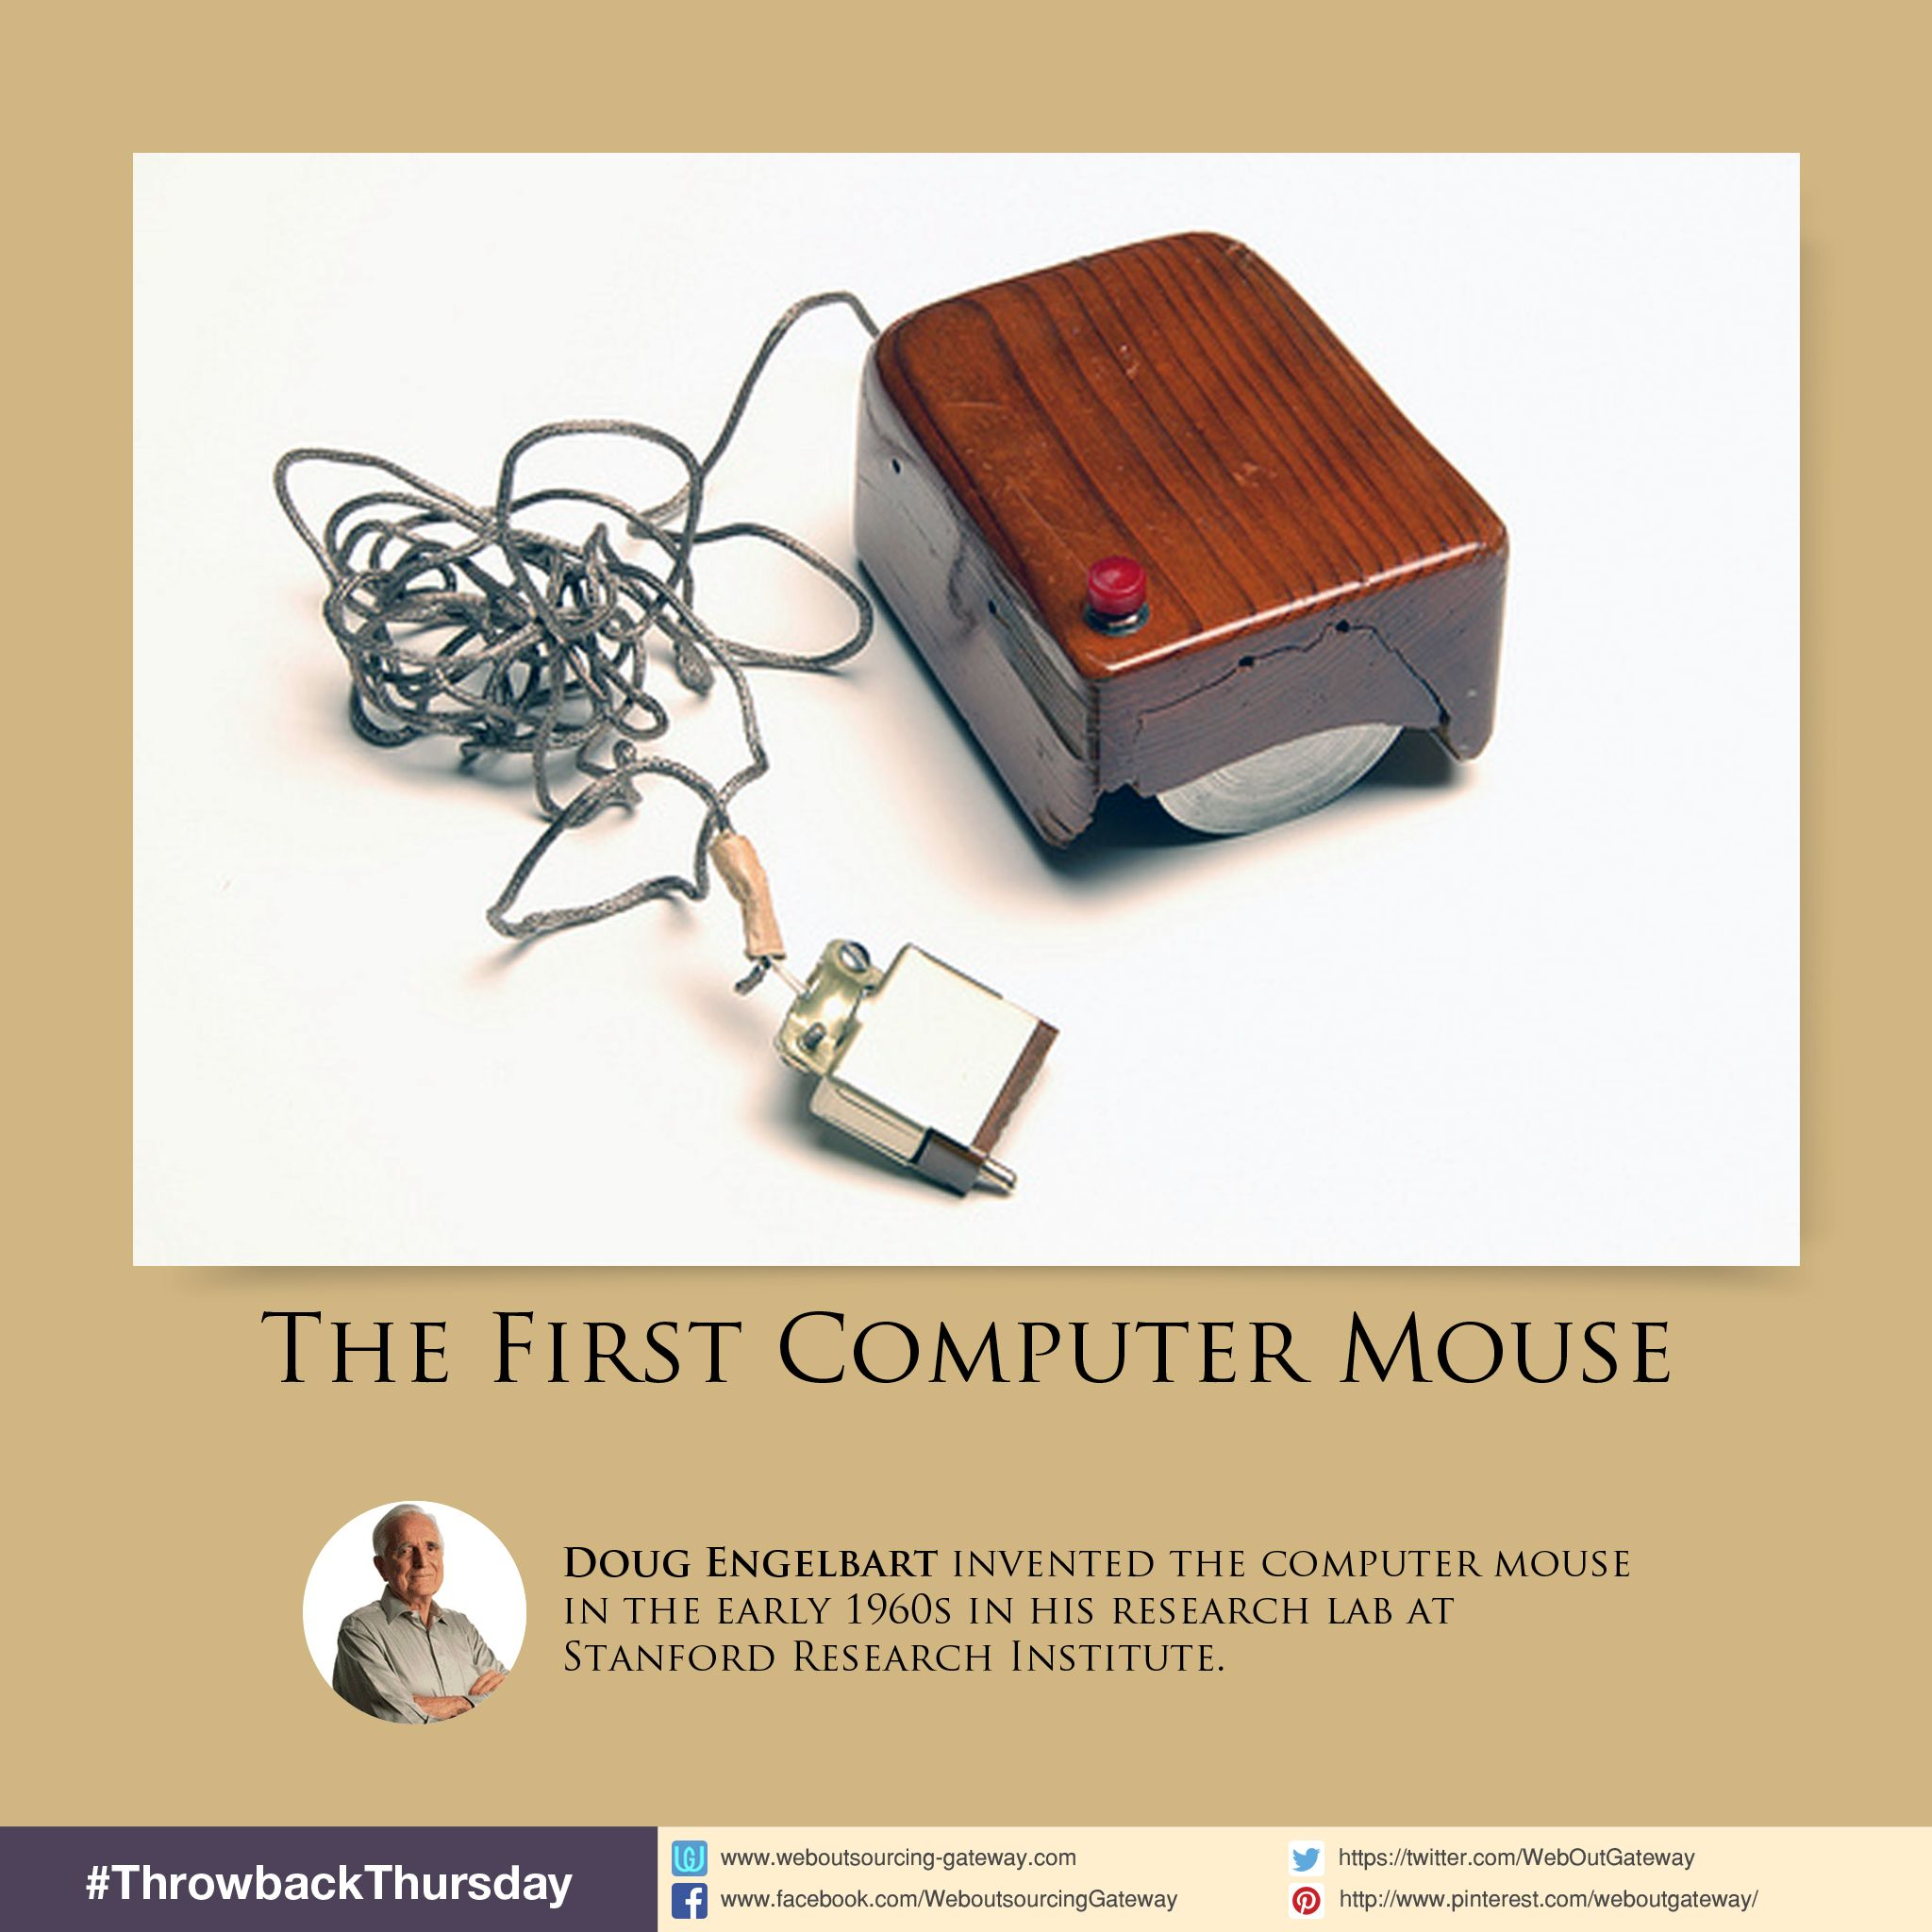 Douglas Engelbart invented the first prototype computer